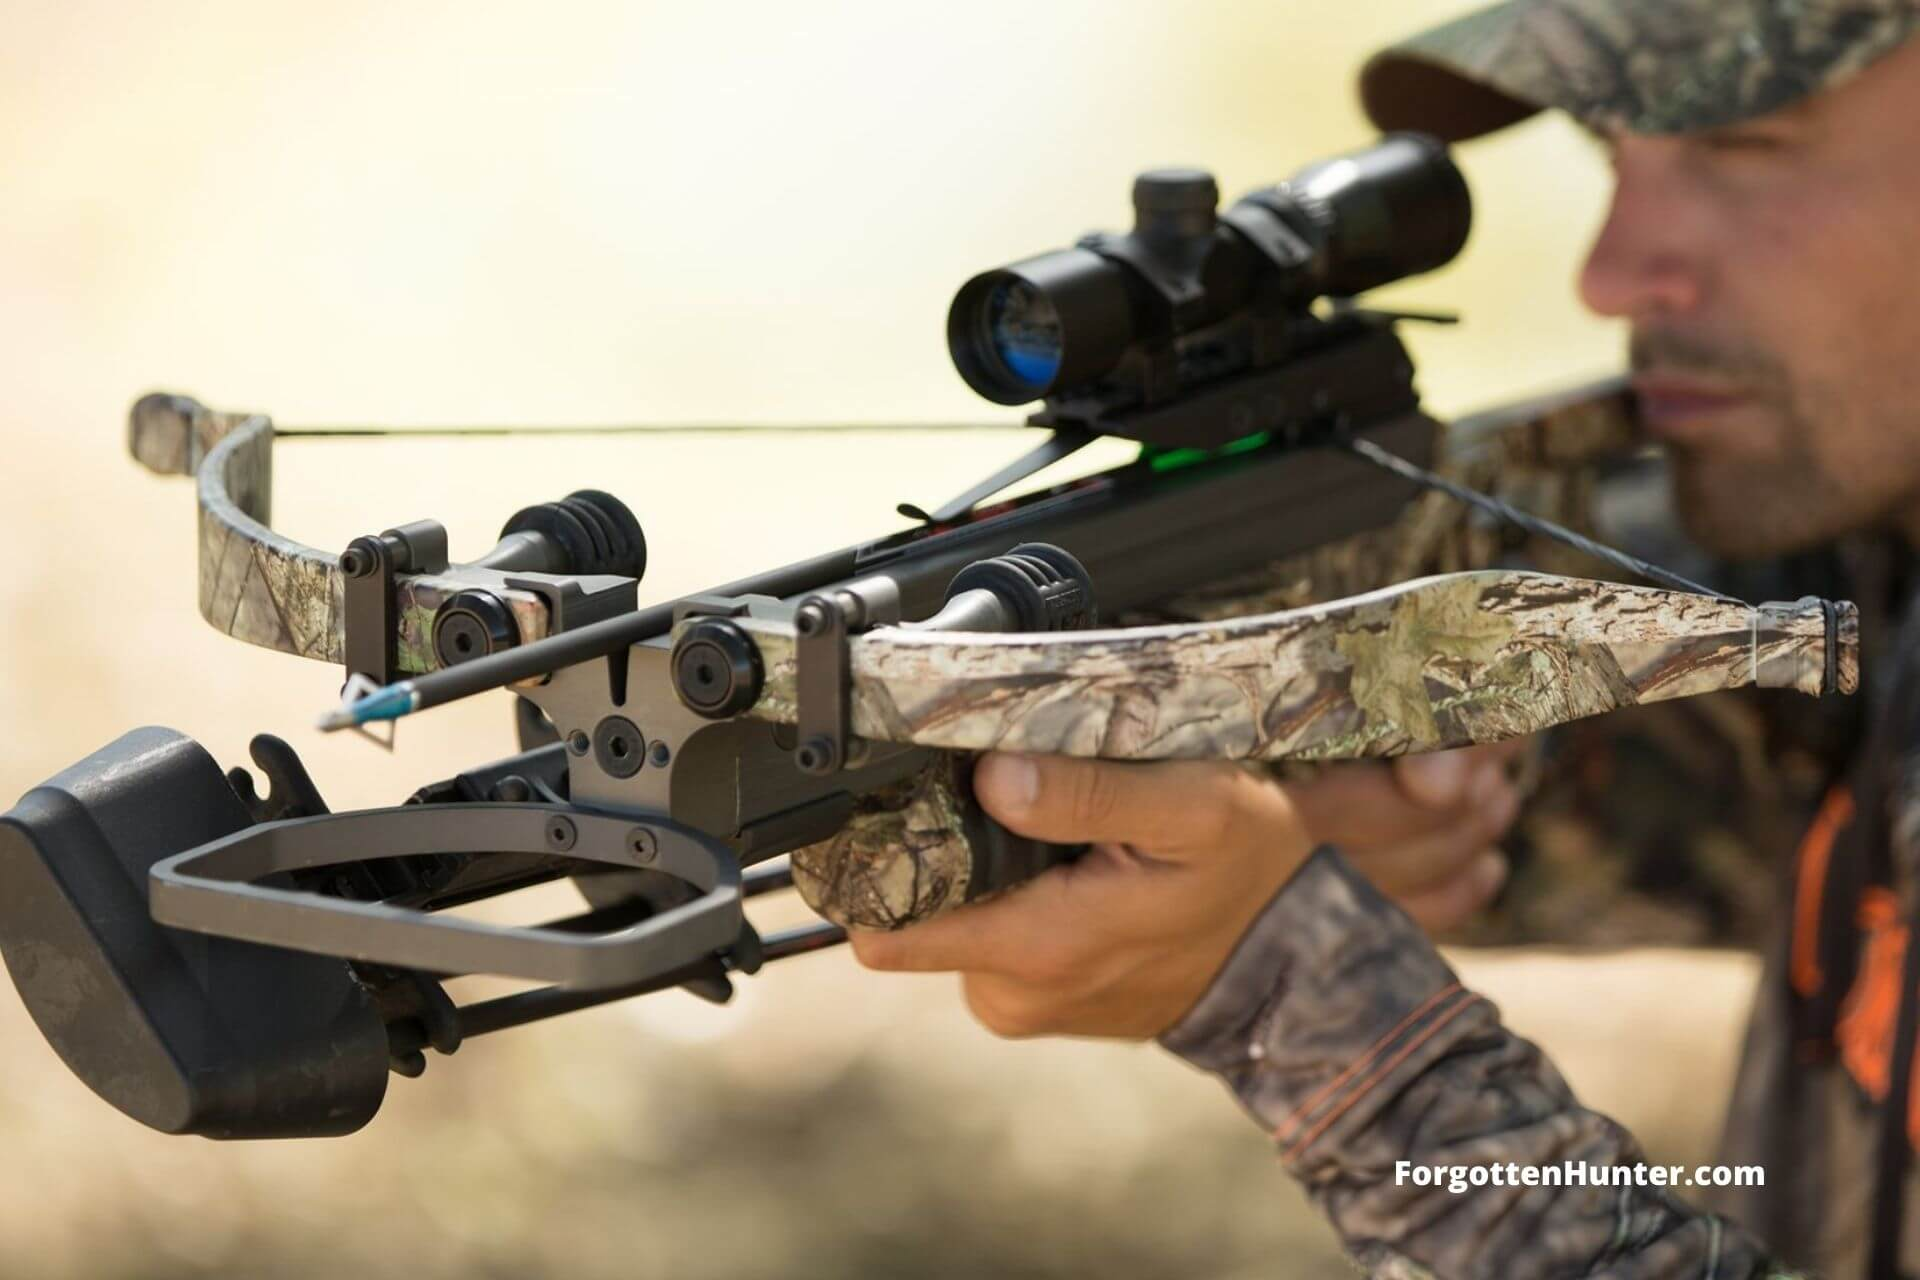 Excalibur Micro Mag 340 (Axe 340) Crossbow Review